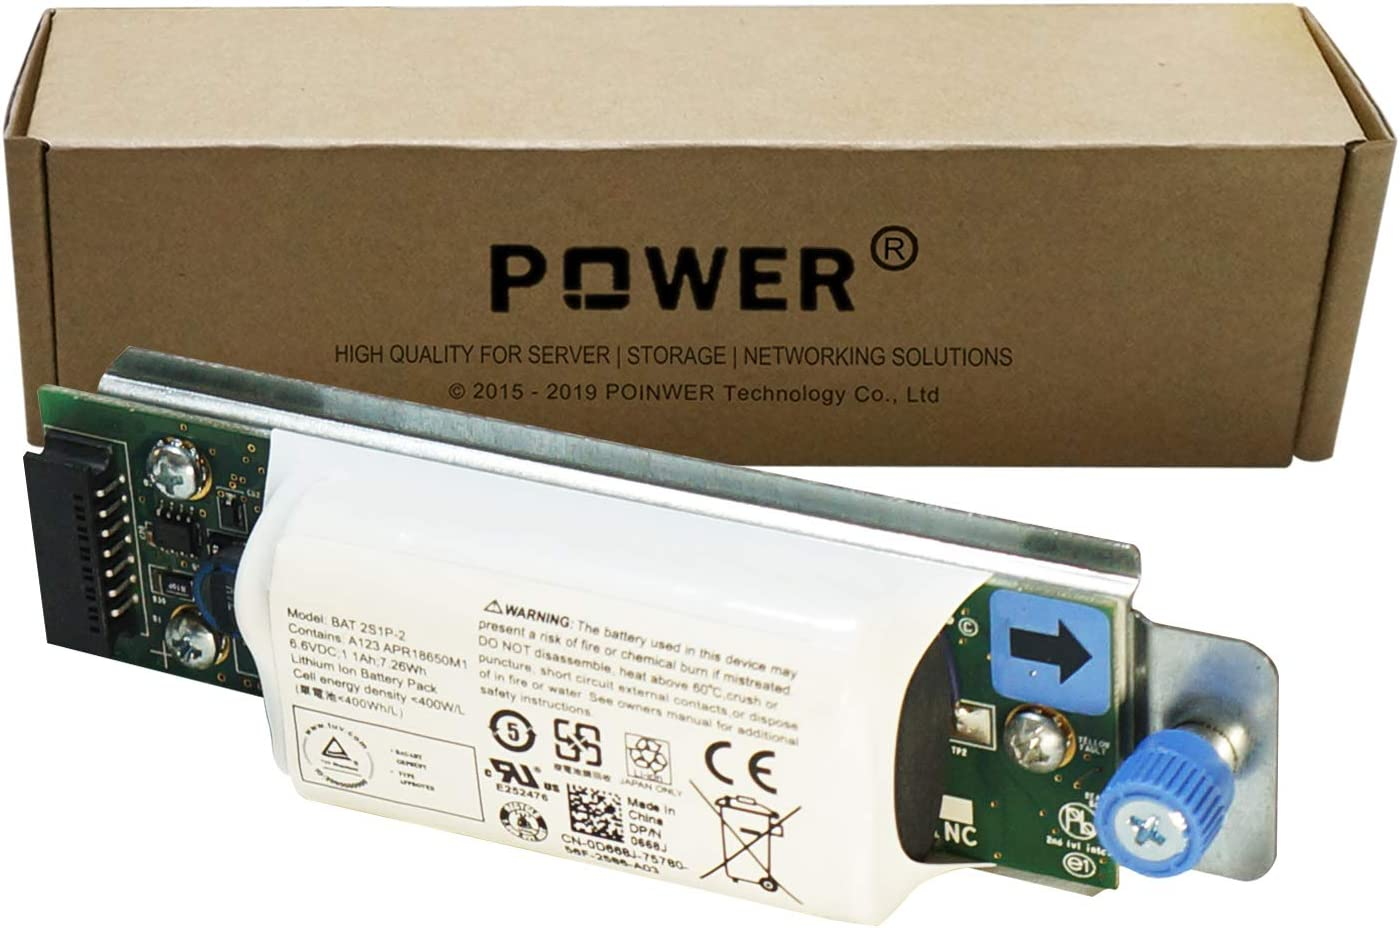 POINWER 0668J 0D668J D668J BAT 2S1P-2 Battery Compatible with Dell Raid Controller PowerVault MD3200i MD3220i Series 6.6V 7.26Wh 1100mAh